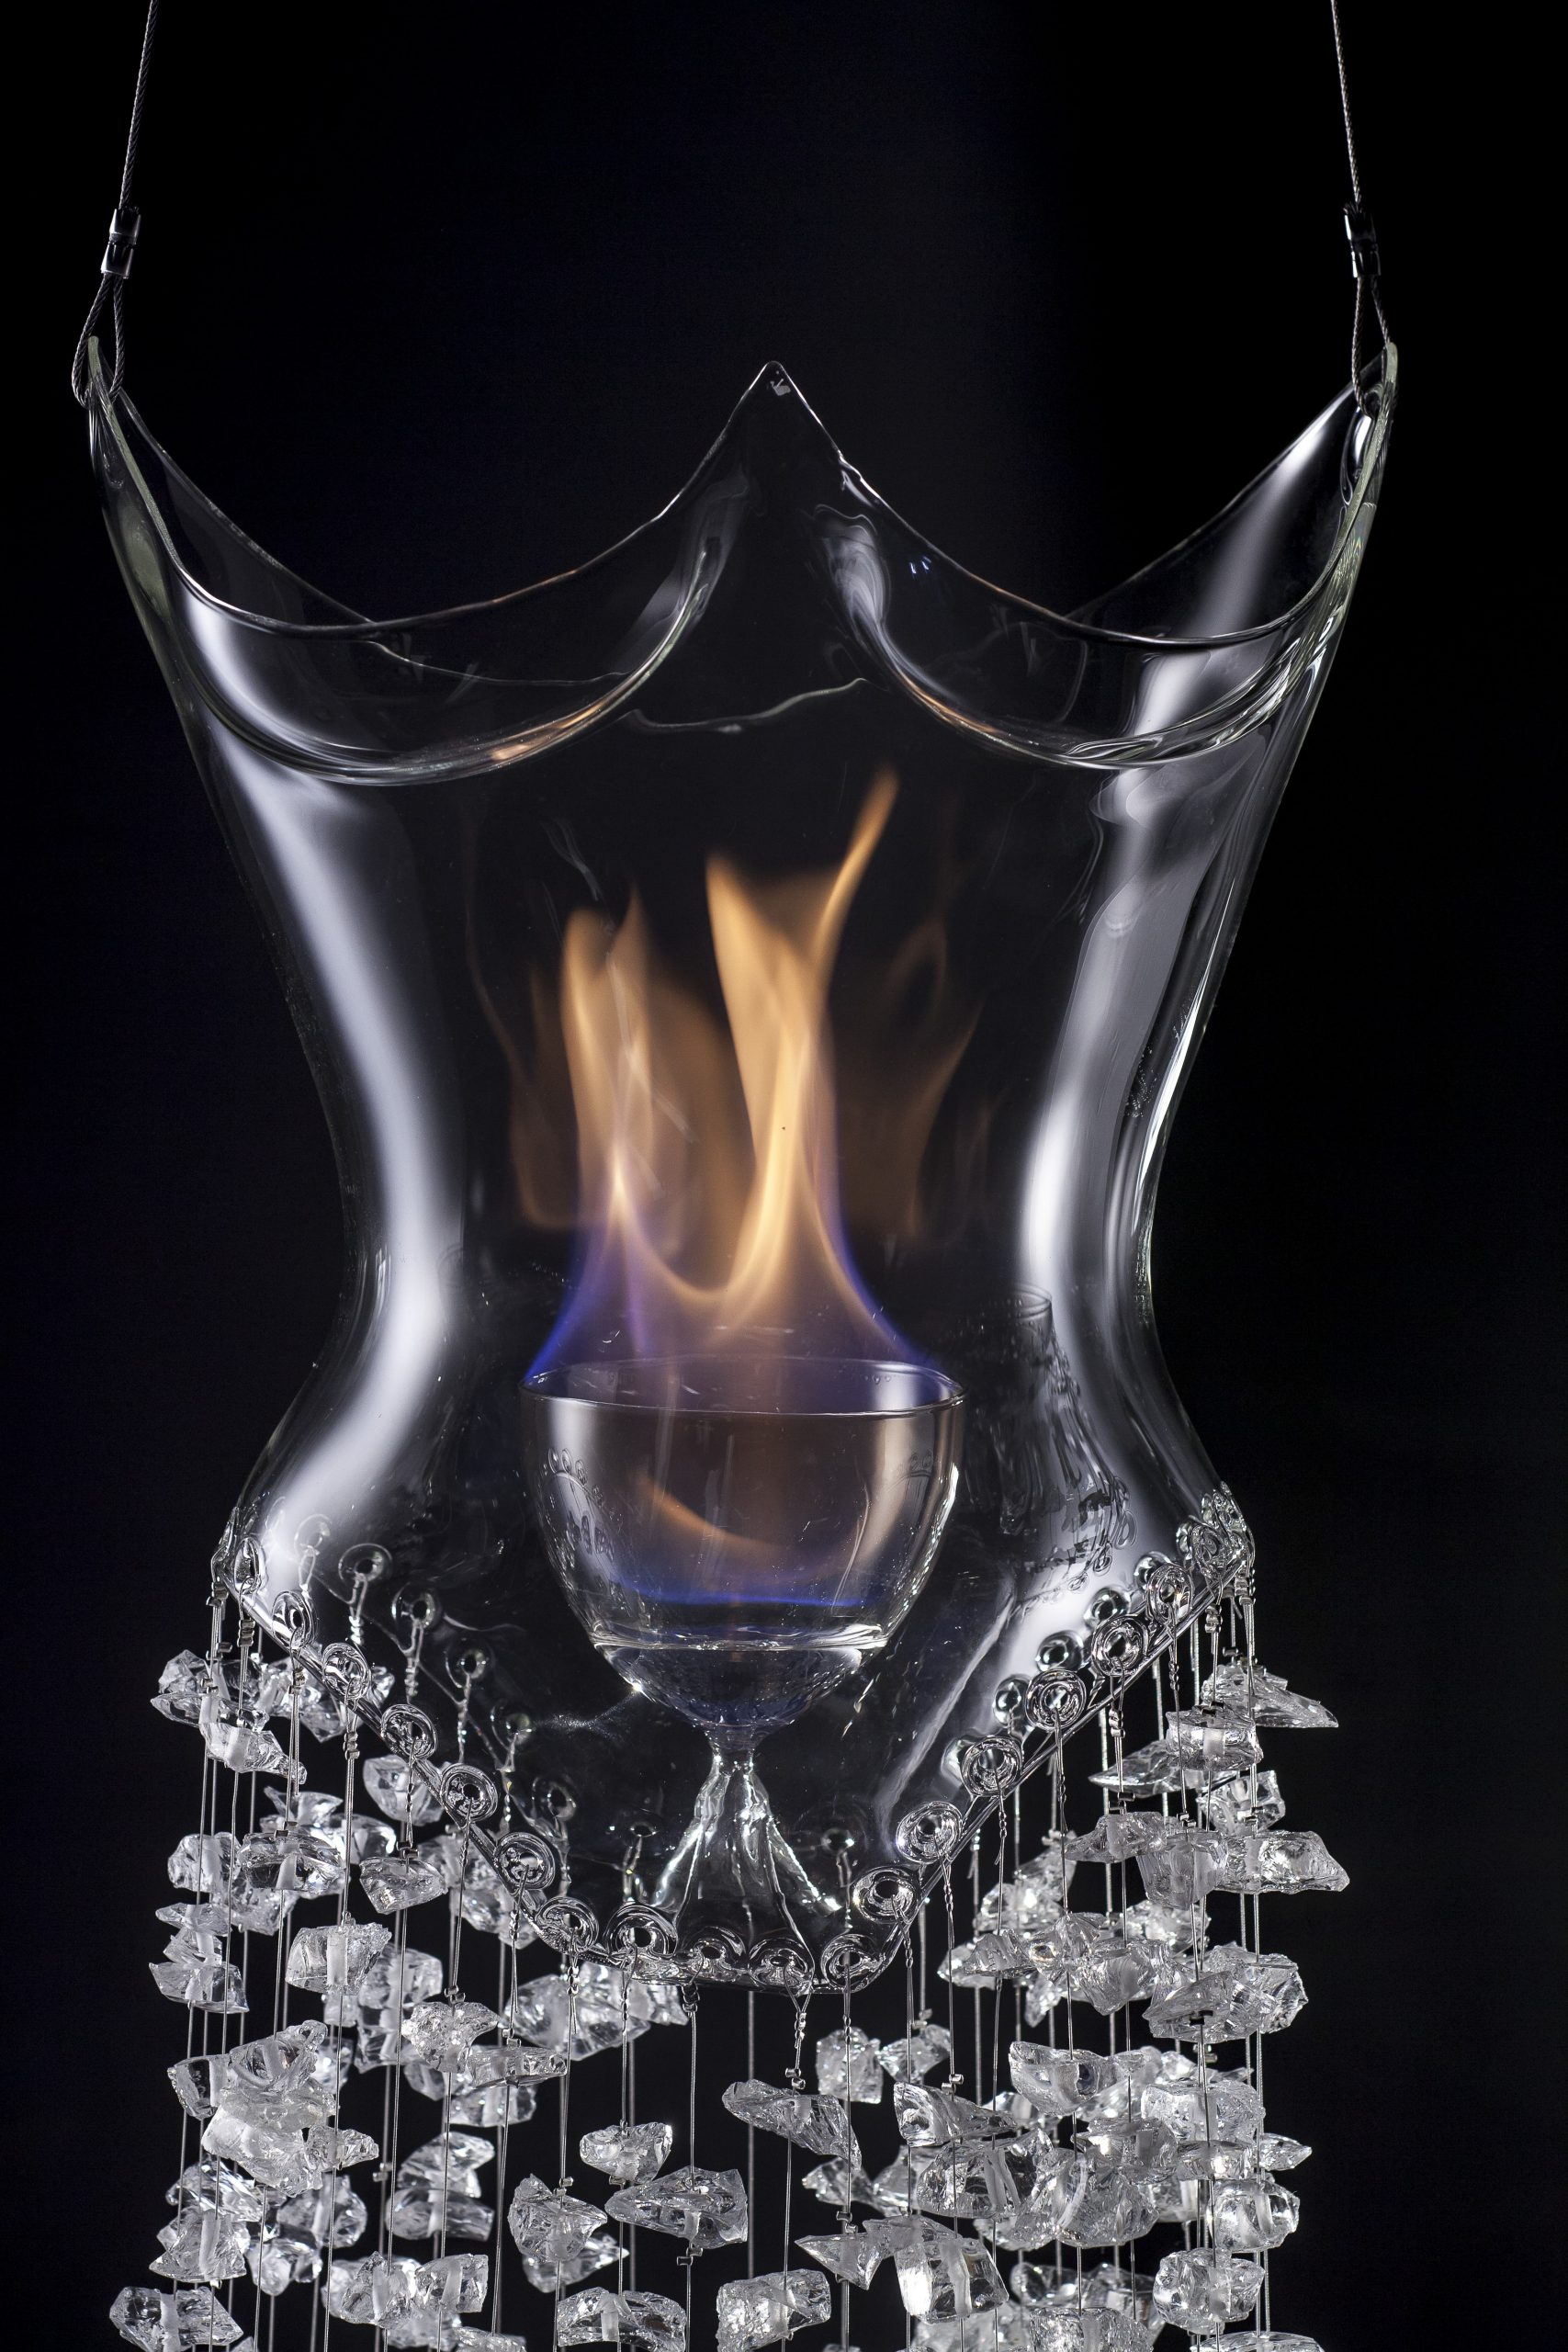 Helen Storey's The Dress of Glass and Flame, 2013